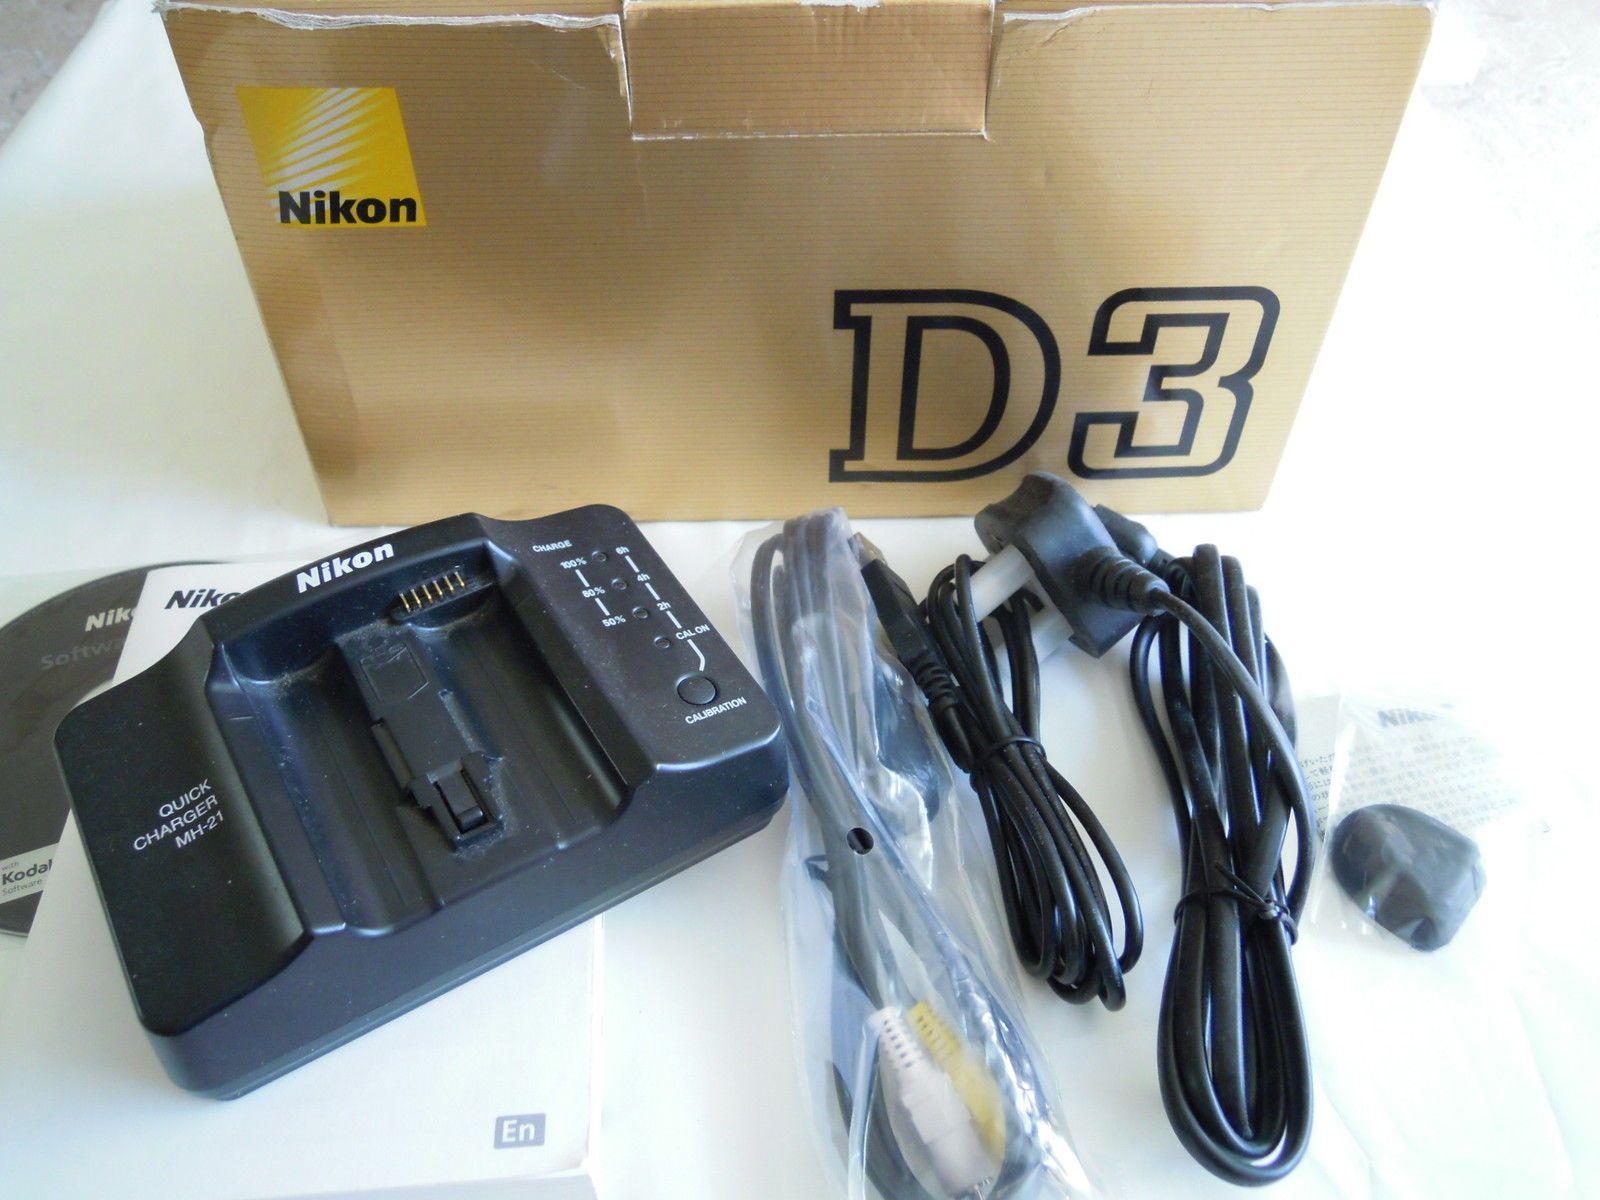 Nikon mh-21 quick charger (en-el4,en-el4a) at keh camera store.